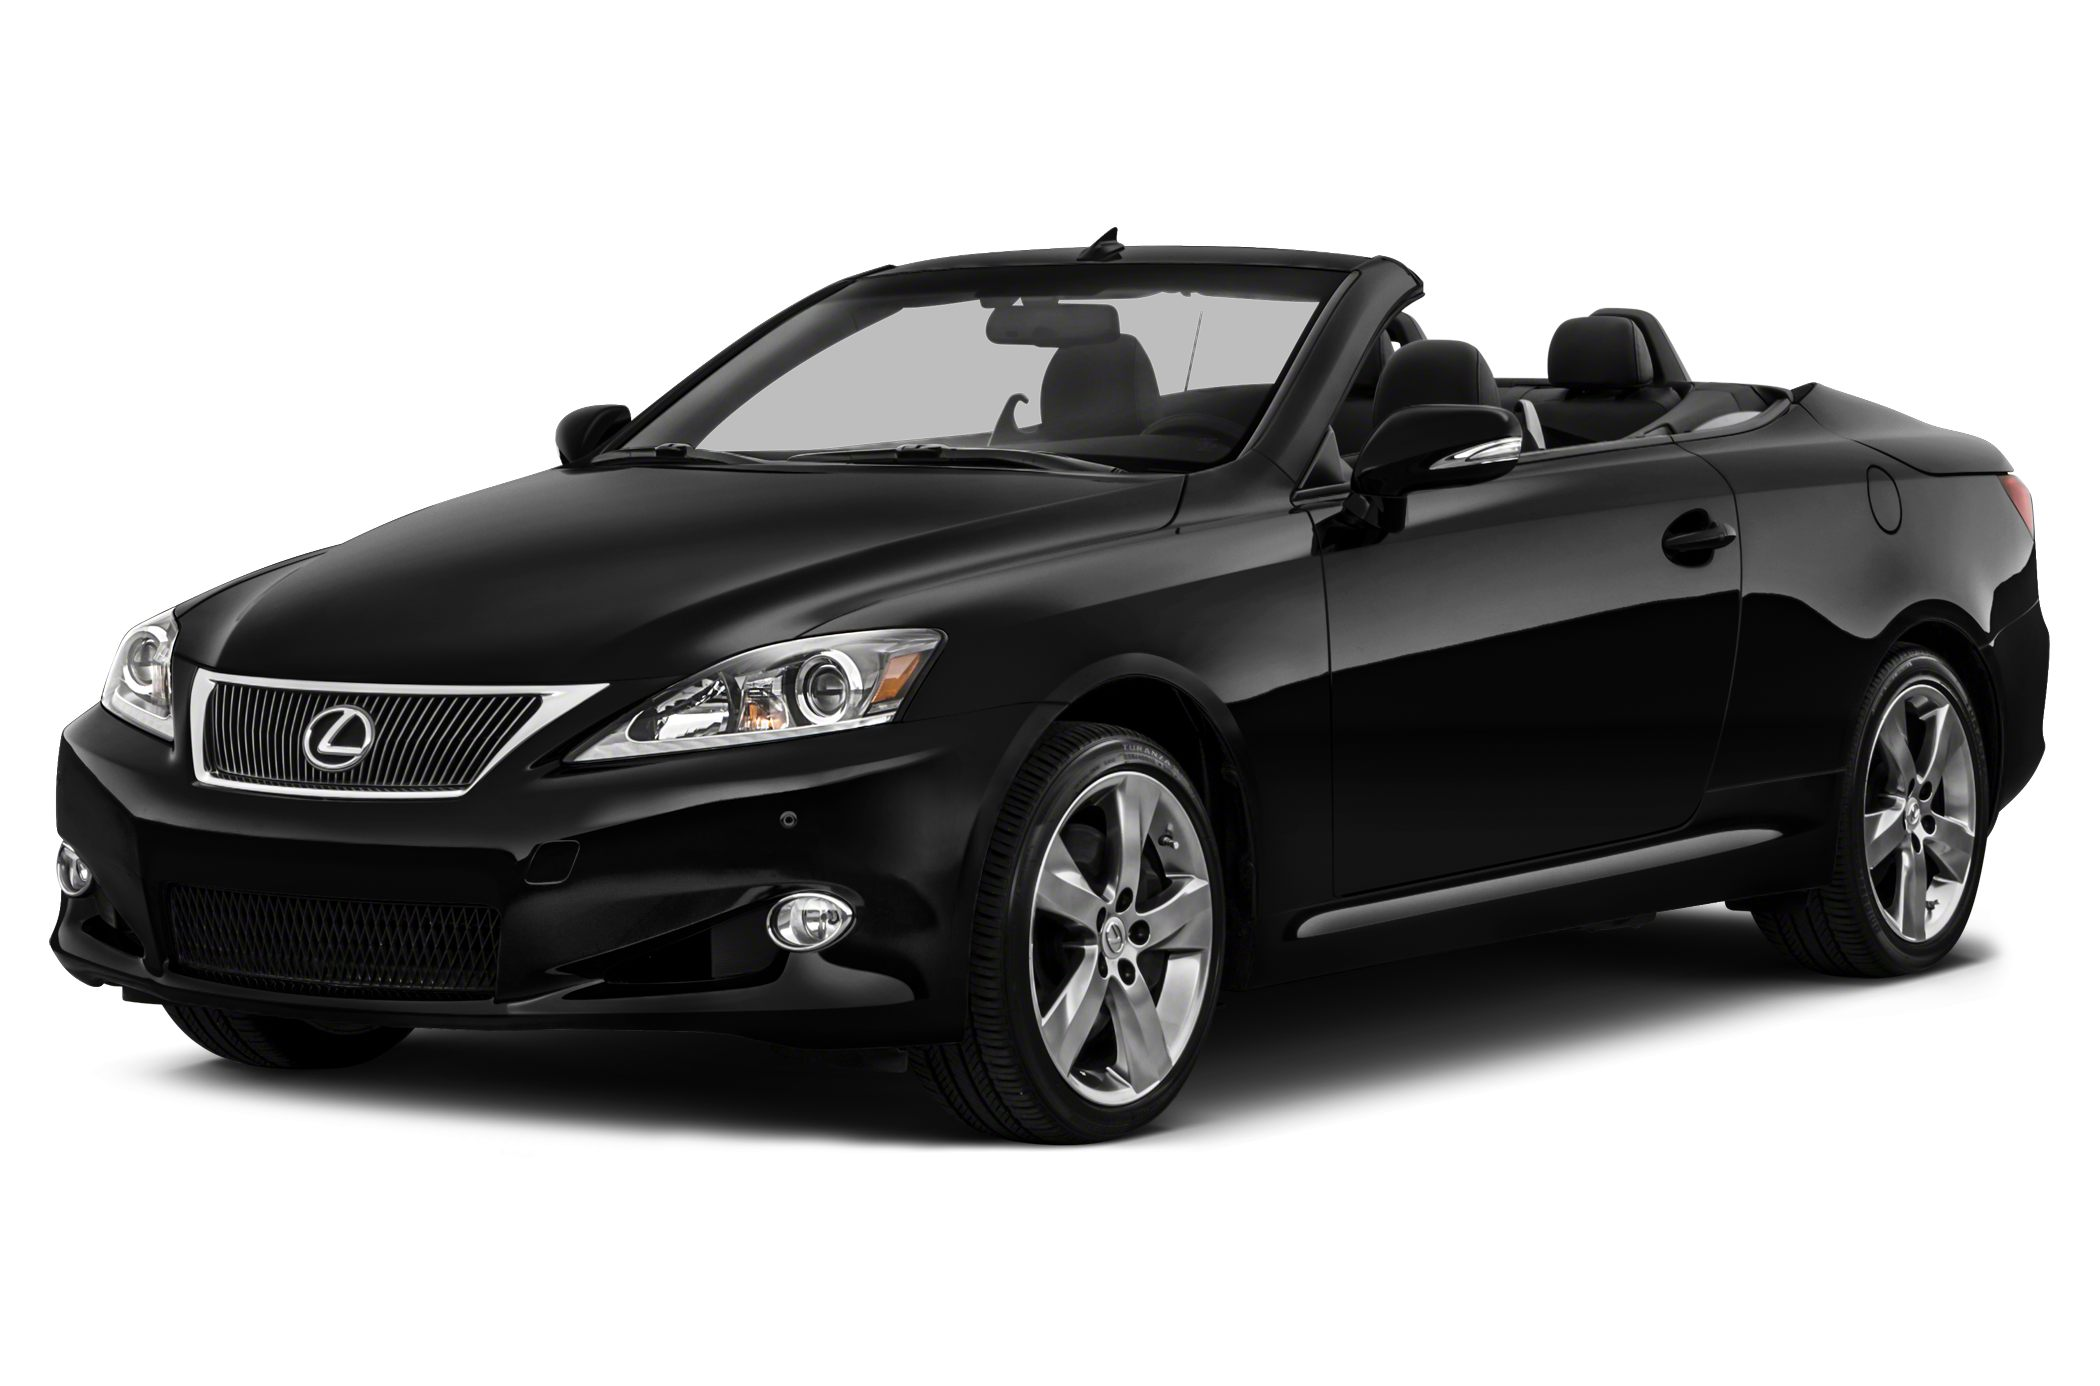 2015 Lexus IS 250C Base Convertible for sale in Raleigh for $52,039 with 7 miles.